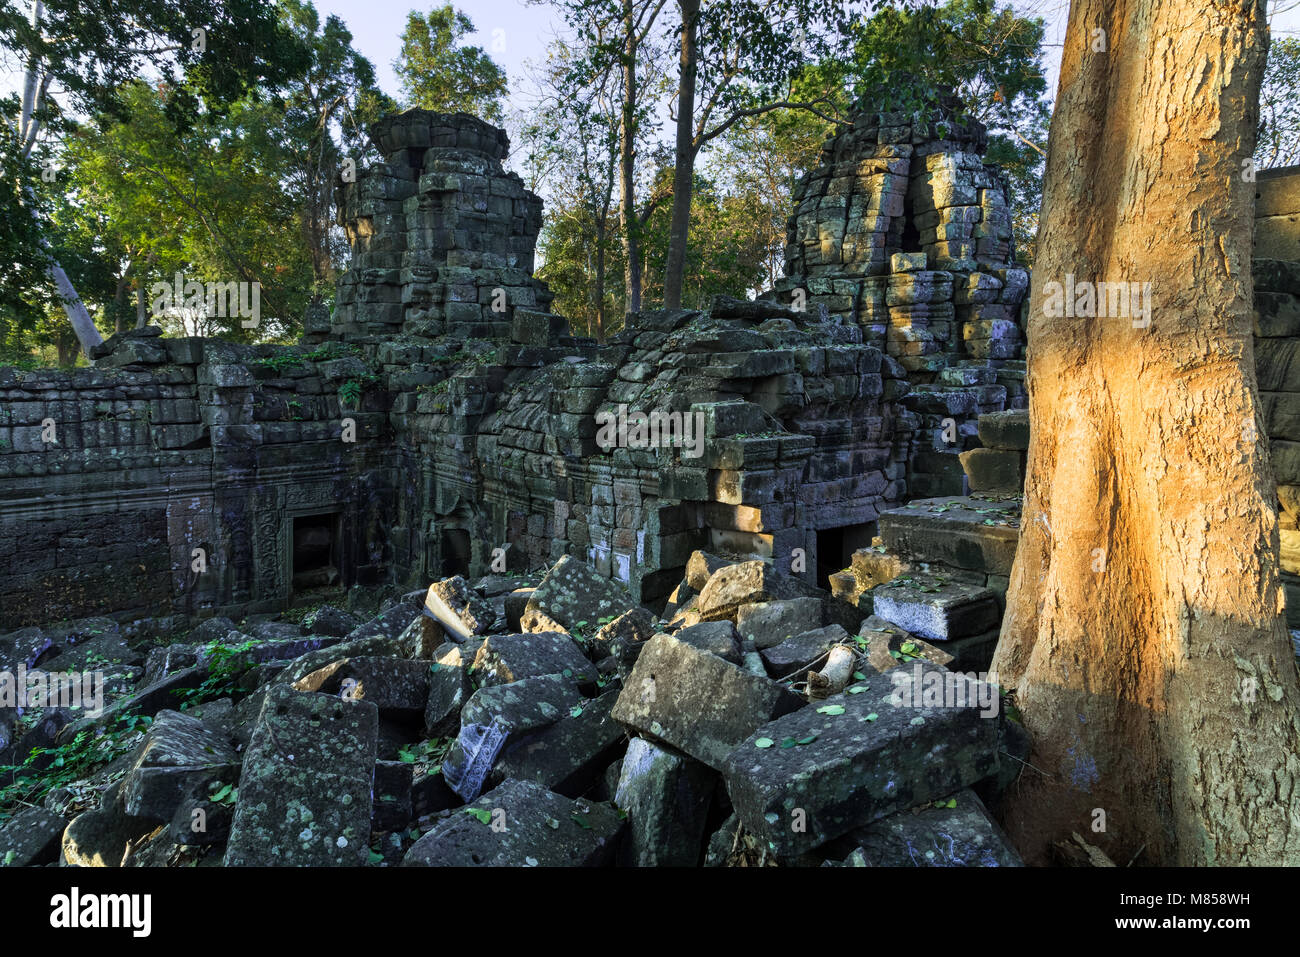 Banteay Chhmar temple, Cambodia - Stock Image